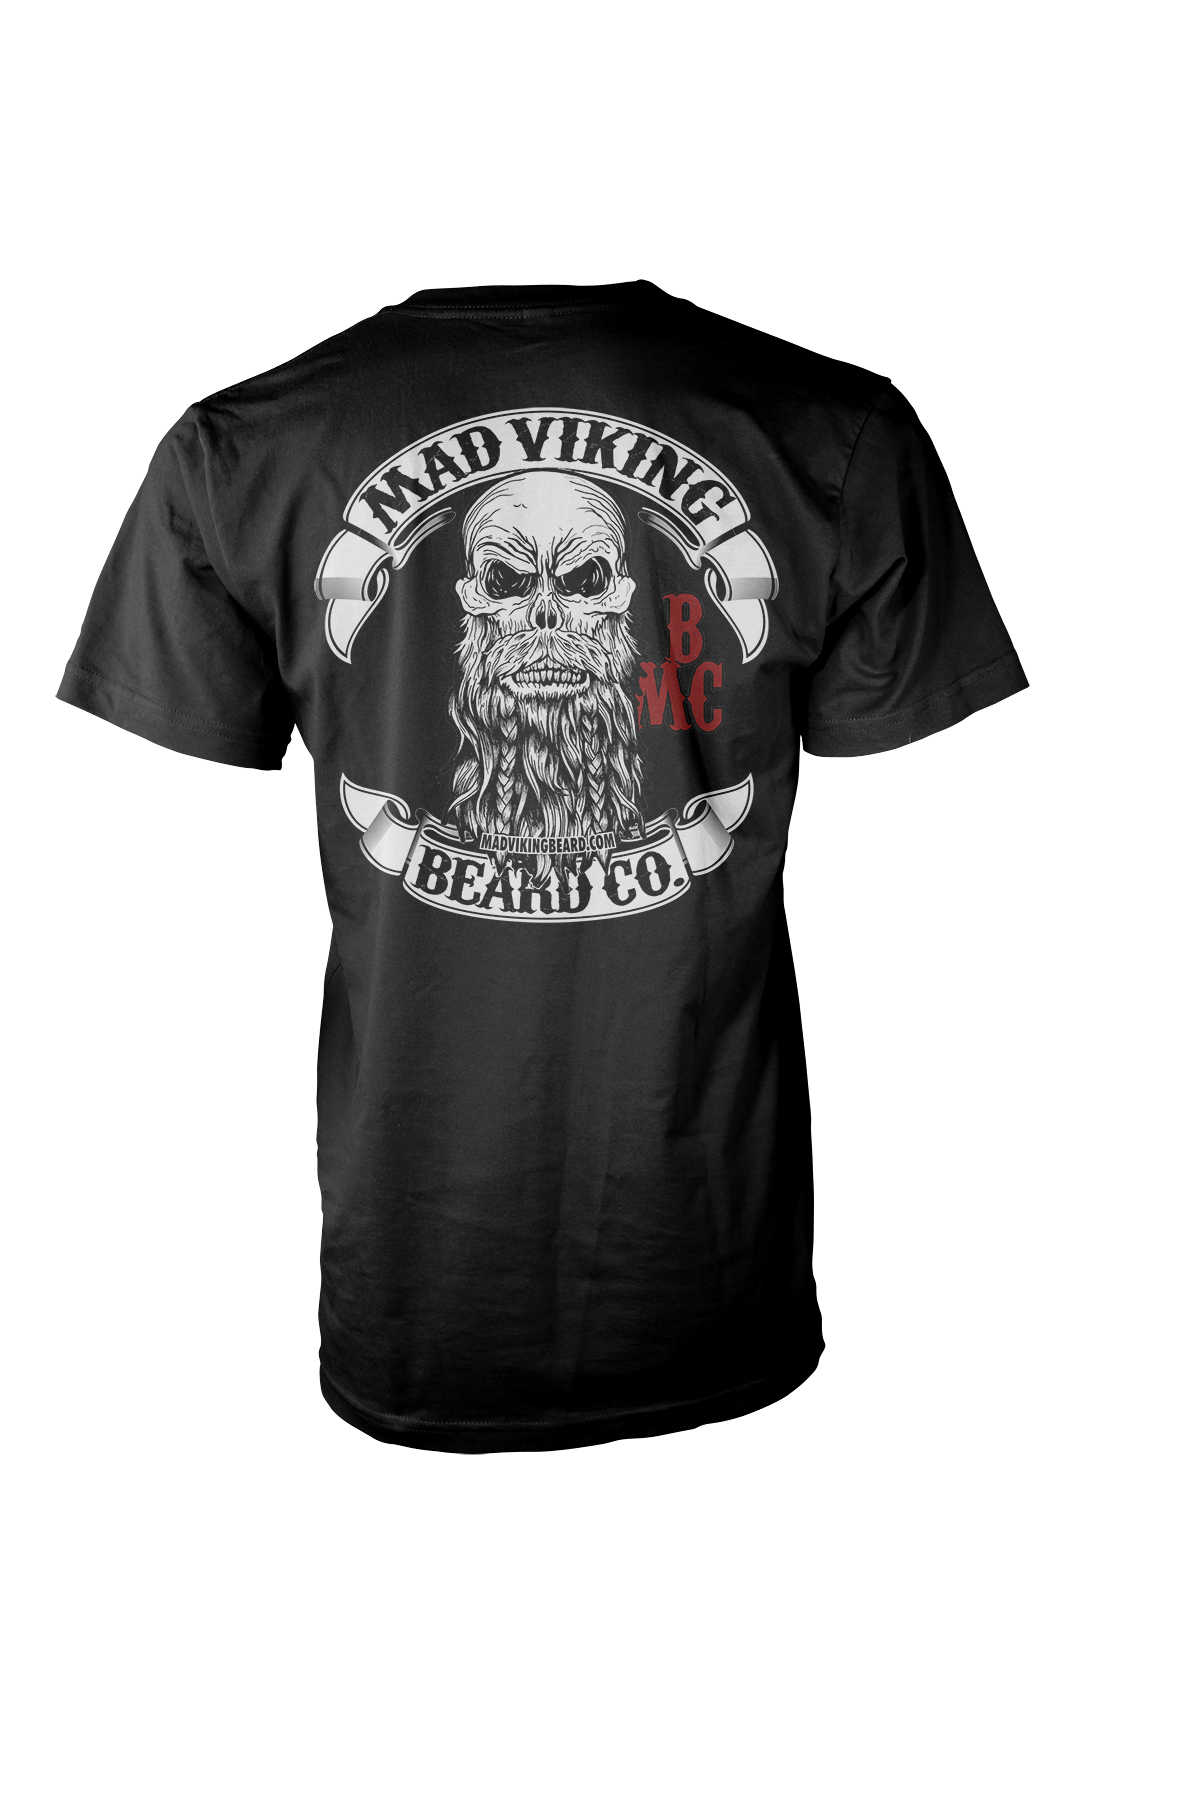 Men's Mad Viking Beard Co Original Tee